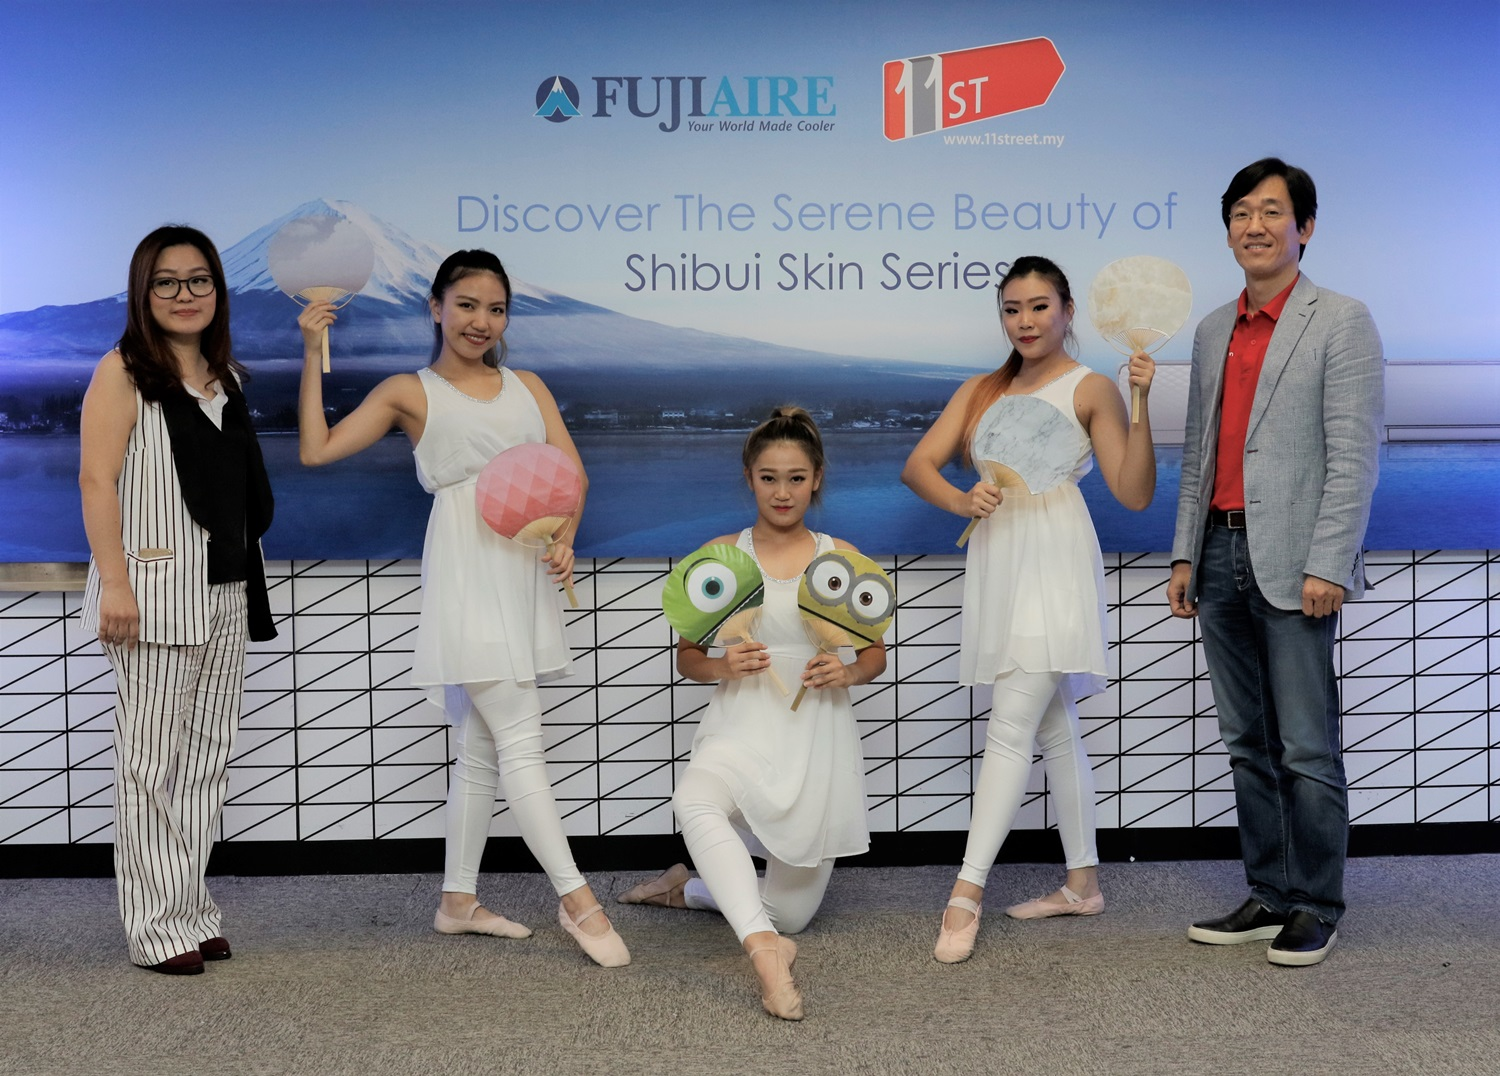 Fujiaire Wifi Functionality Launch Event